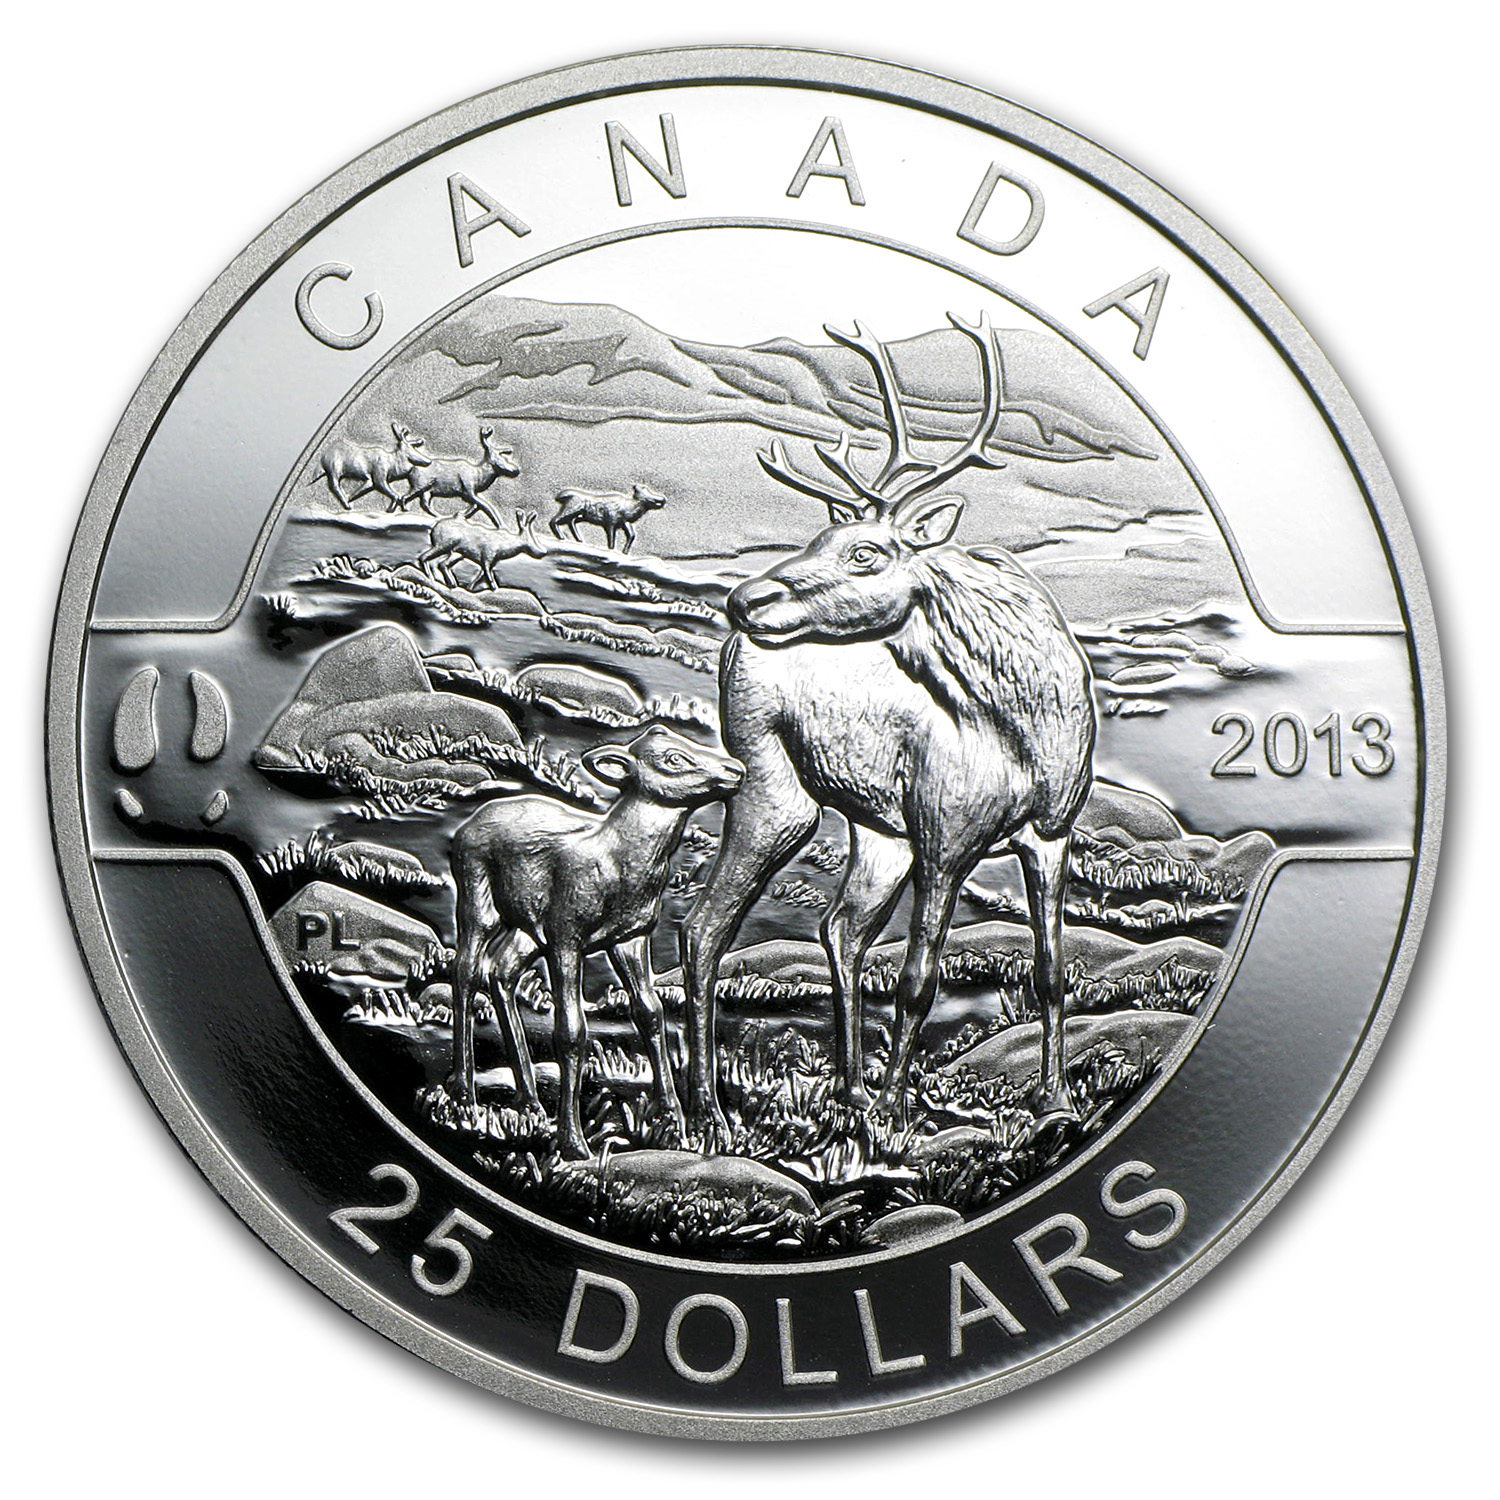 2013 1 oz Silver Canadian $25 Coin - The Caribou